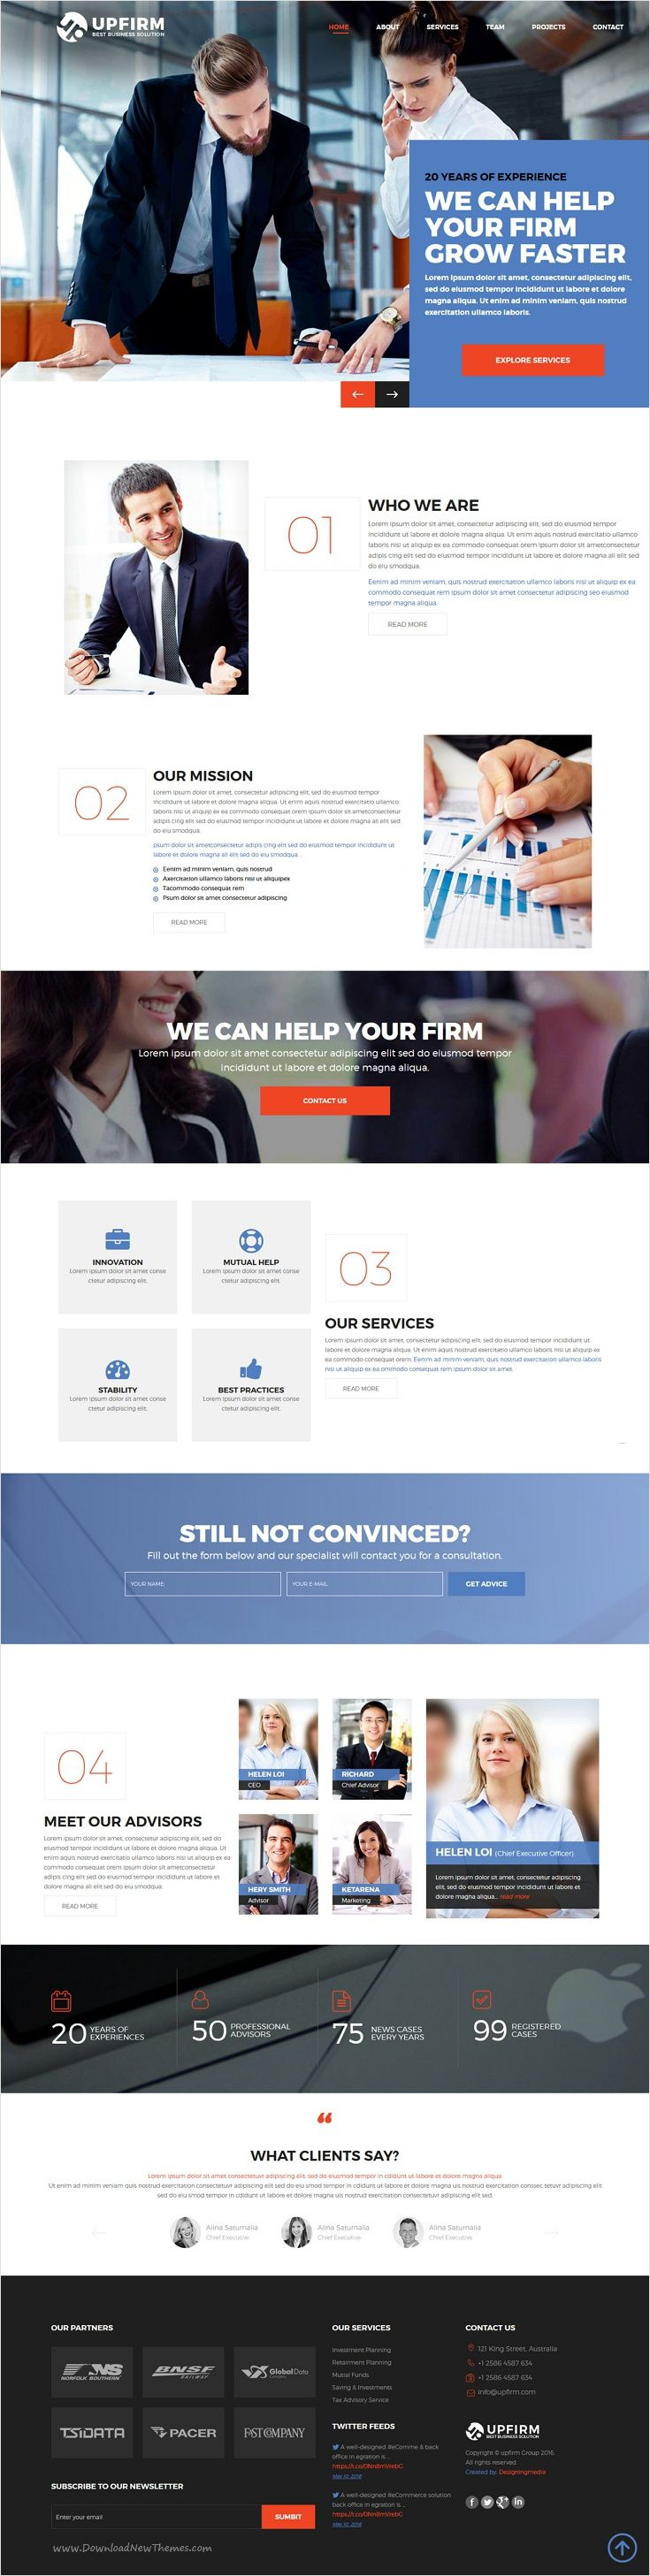 72 best business website templates images on pinterest upfirm multi purpose html5 website template flashek